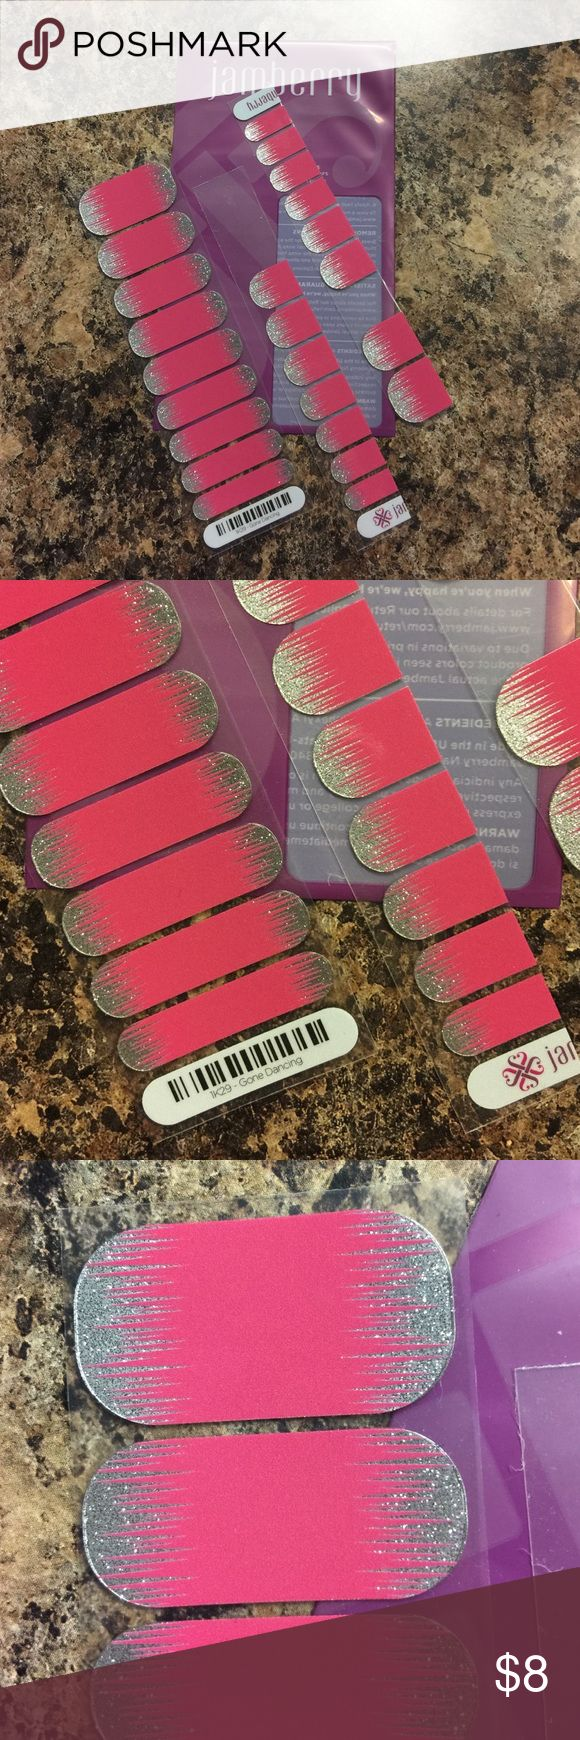 Jamberry Nail Wraps 1K29-Gone Dancing Nail Wraps. Jamberry Other